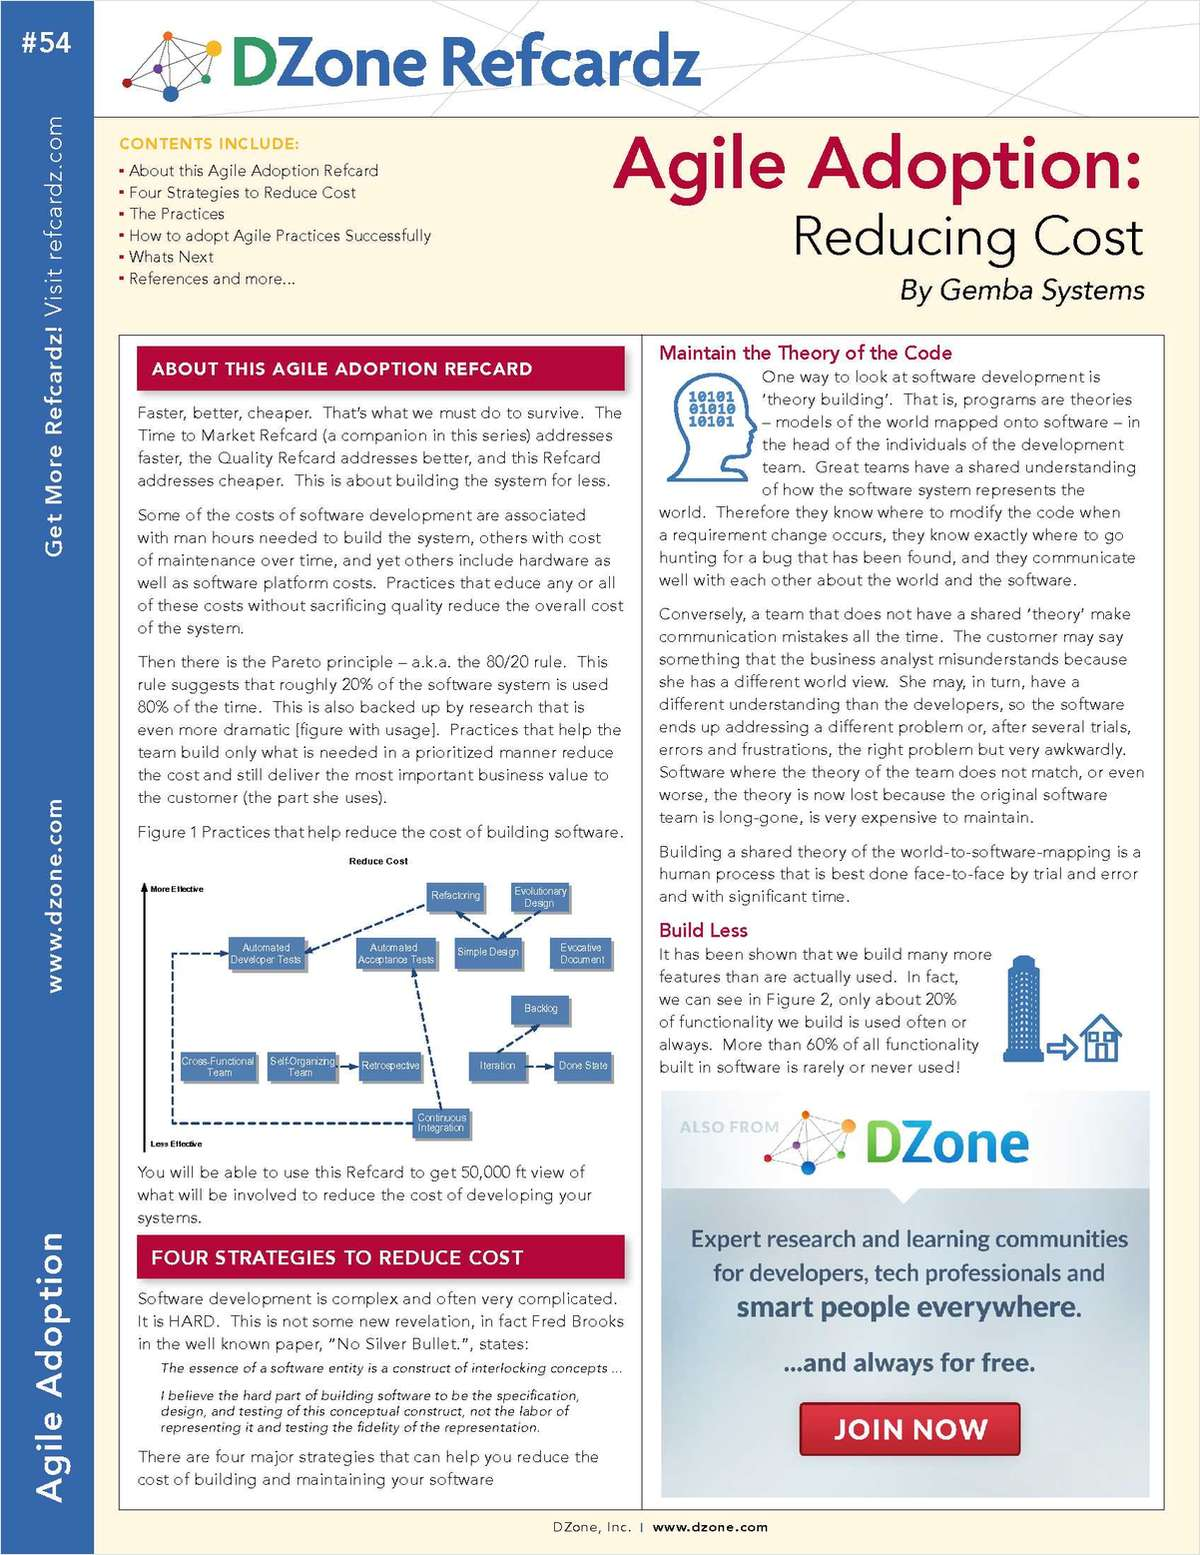 The Essential Agile Adoption Cheat Sheet: Reducing Cost